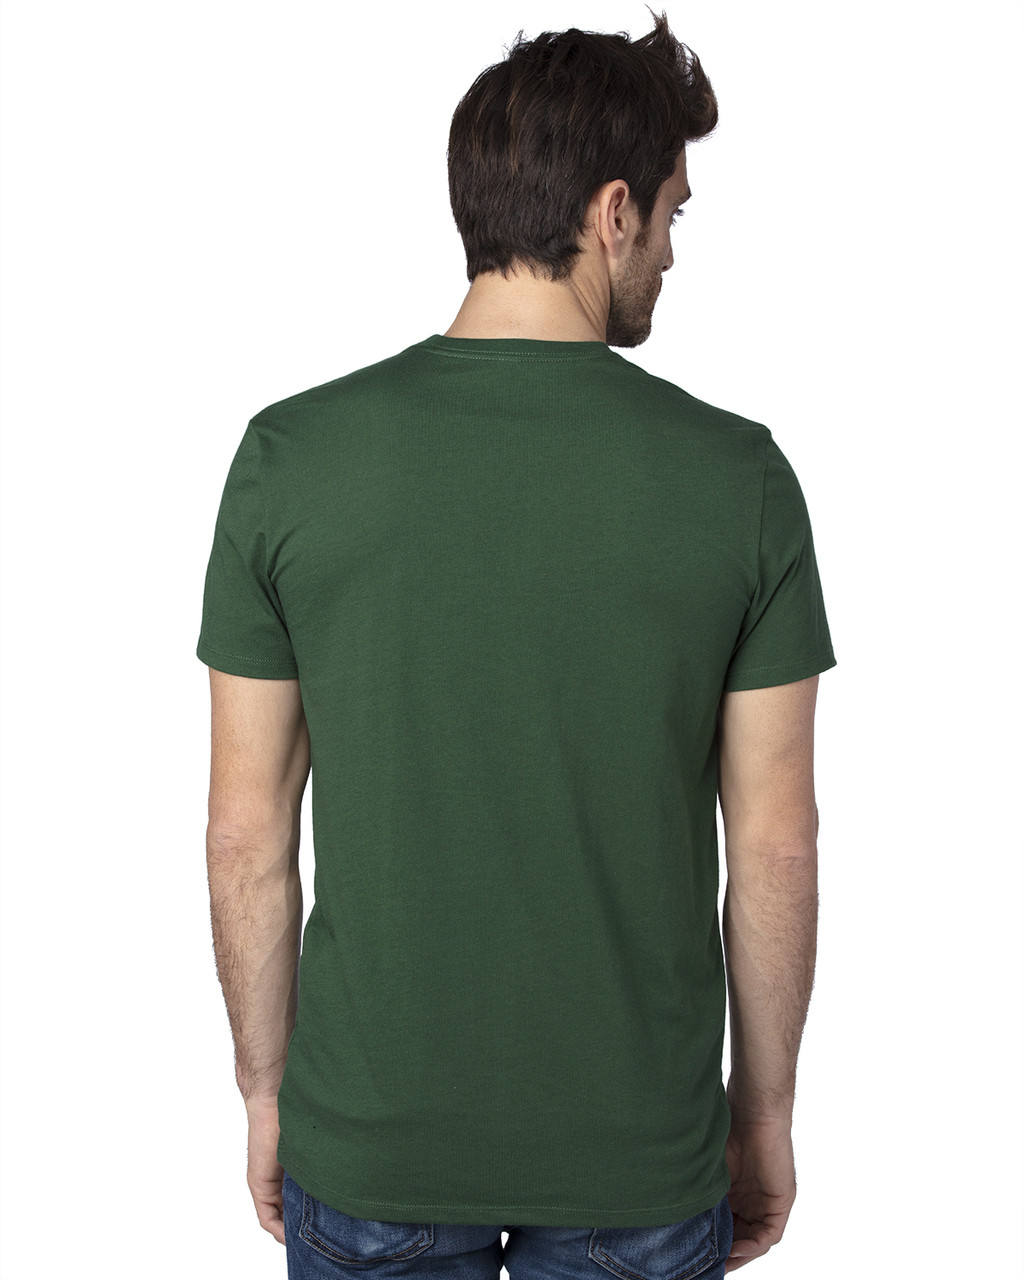 Forest Green - Back, 100A Threadfast Unisex Ultimate Short-Sleeve T-Shirt   BlankClothing.ca